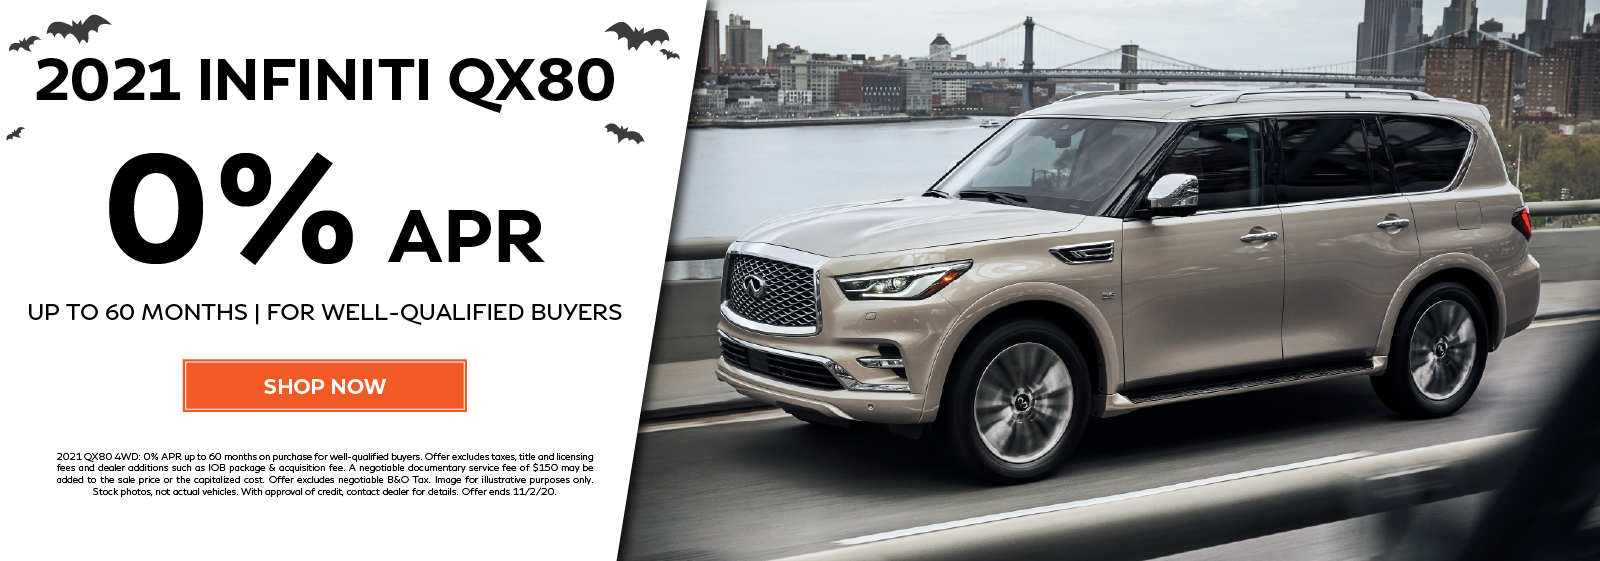 Well-qualified buyers get 0% APR for 60 months on all new 2021 QX80. Click to shop now.